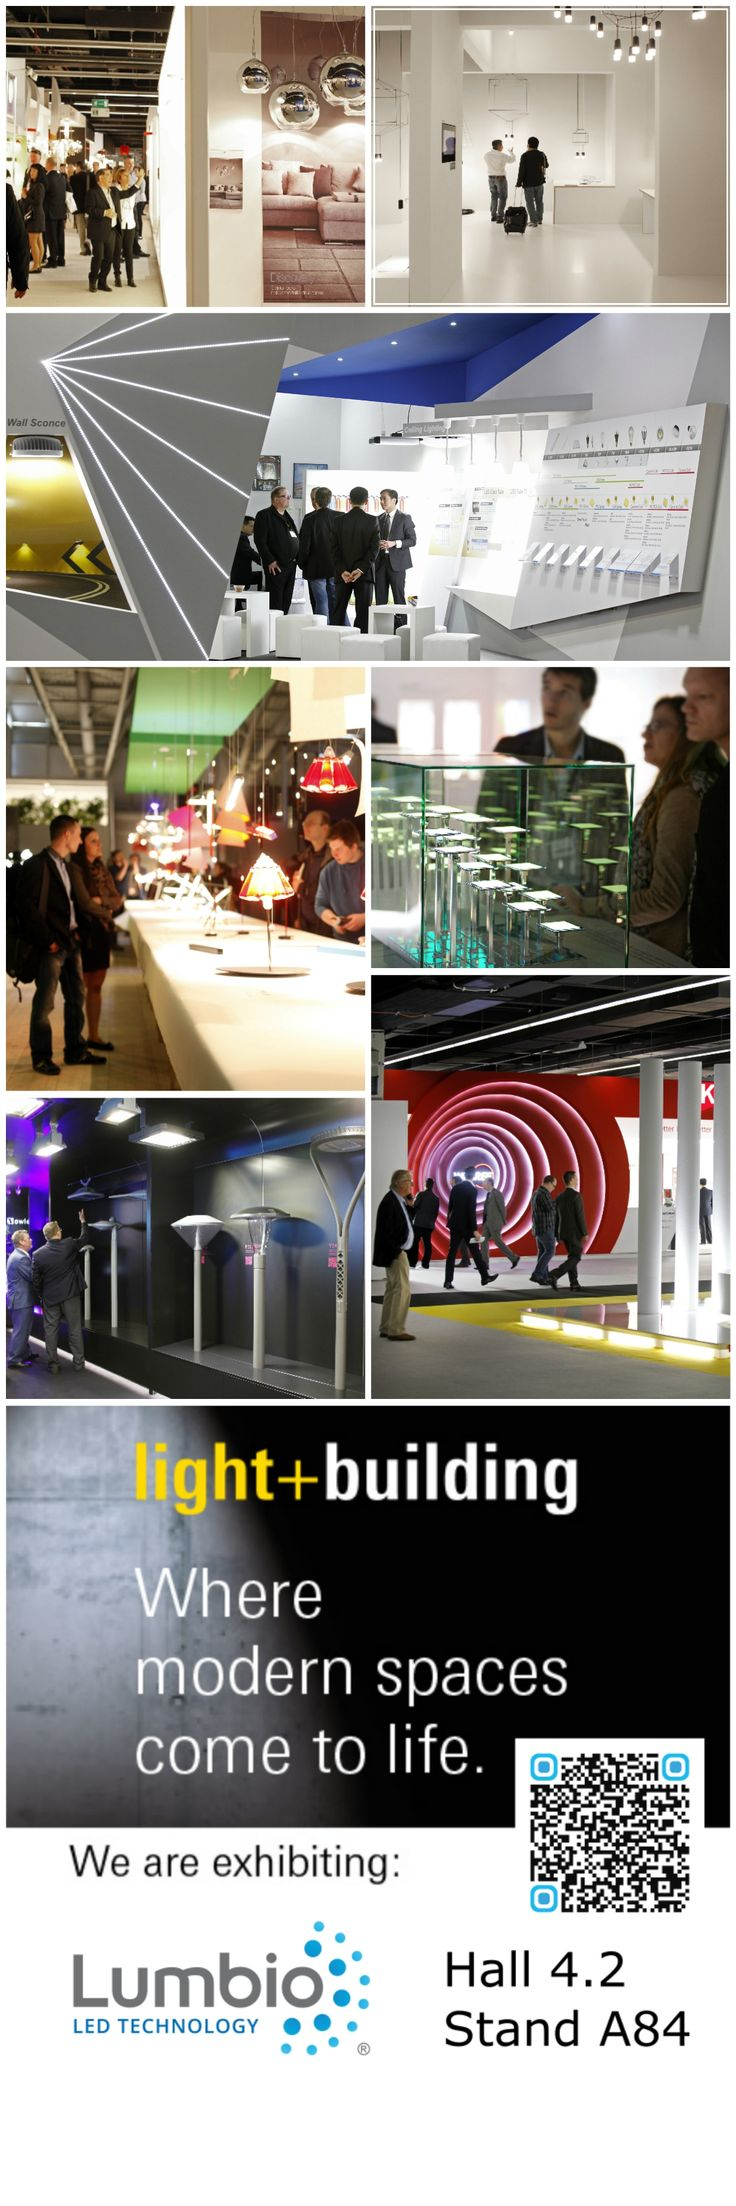 See light+building photos and great atmosphere from last years. Come to see Lumbio in 2016 (13-18.3.)!